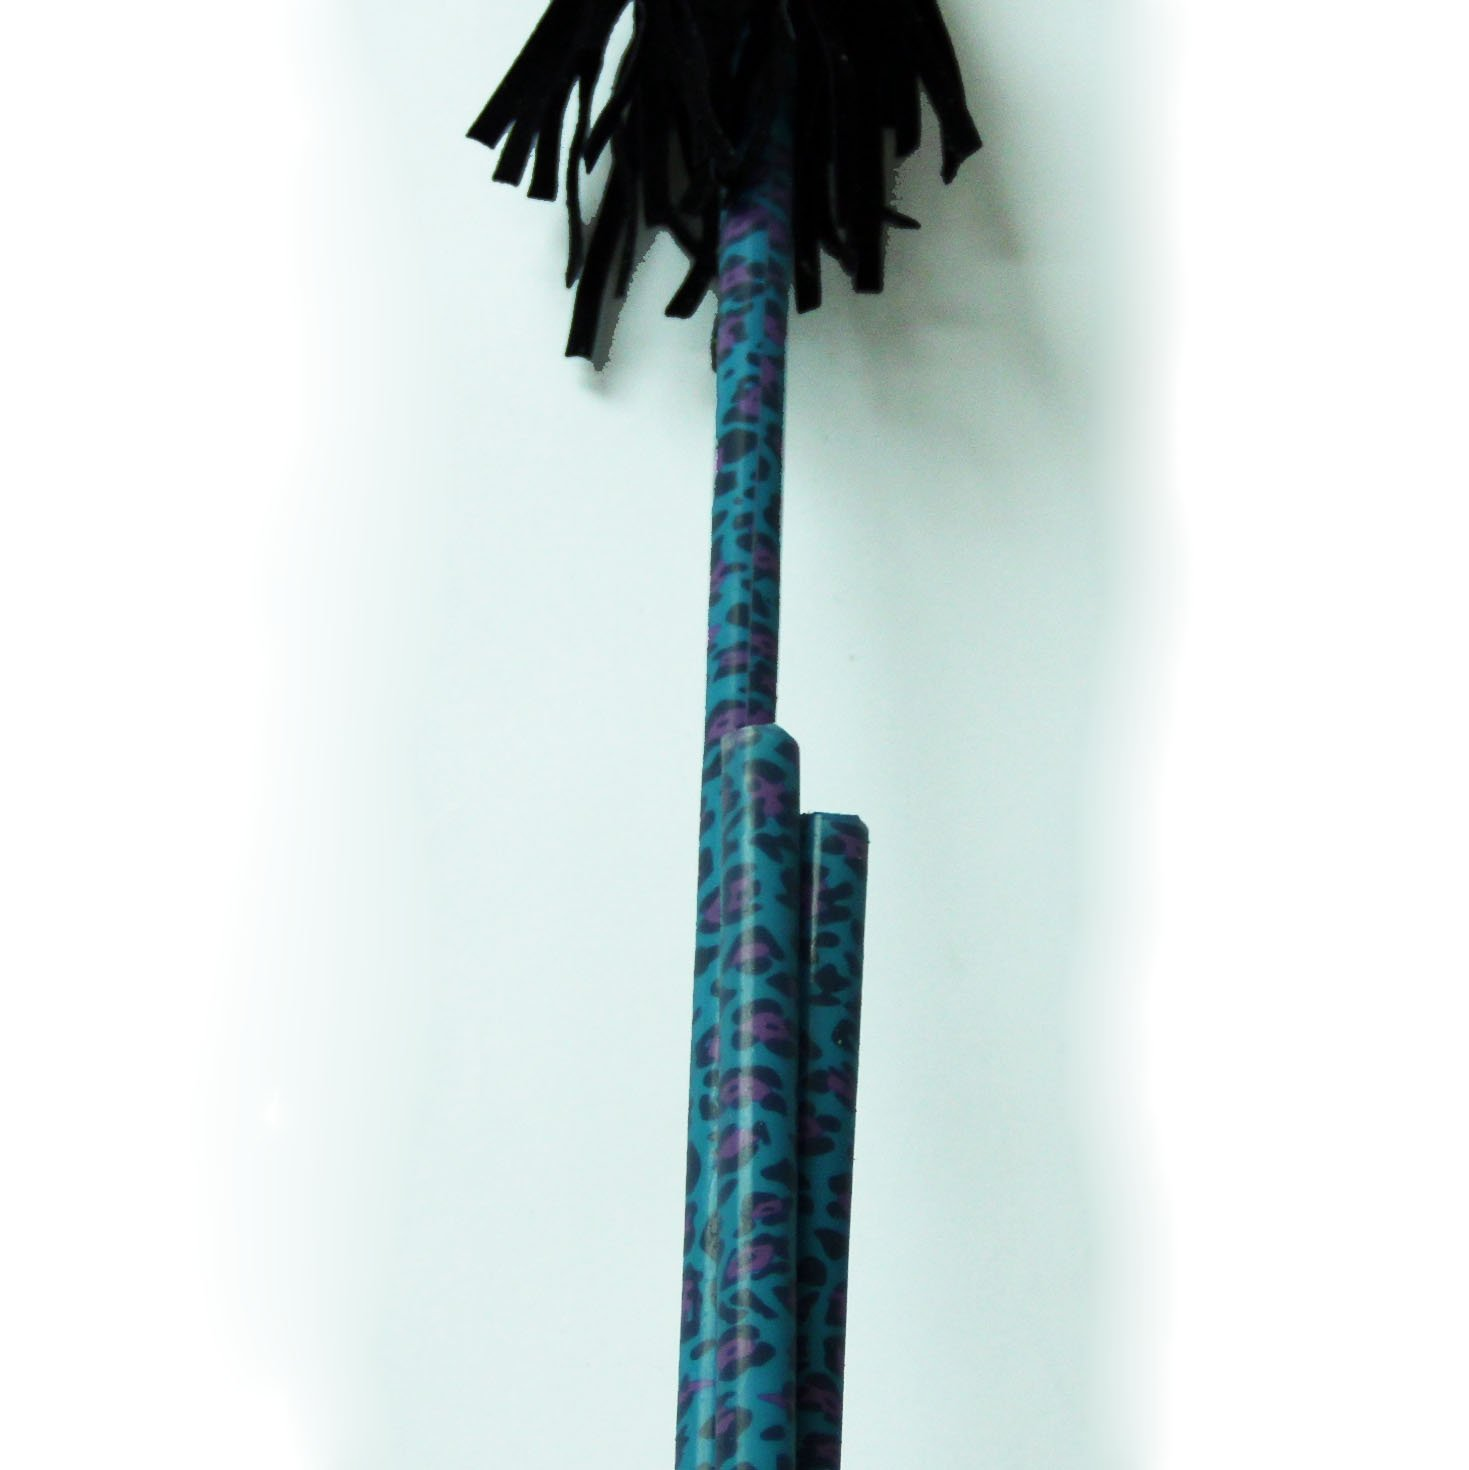 Z-Stix Mosquito Flower Sticks-Blue Leopard- Juggling Sticks by Z-Stix